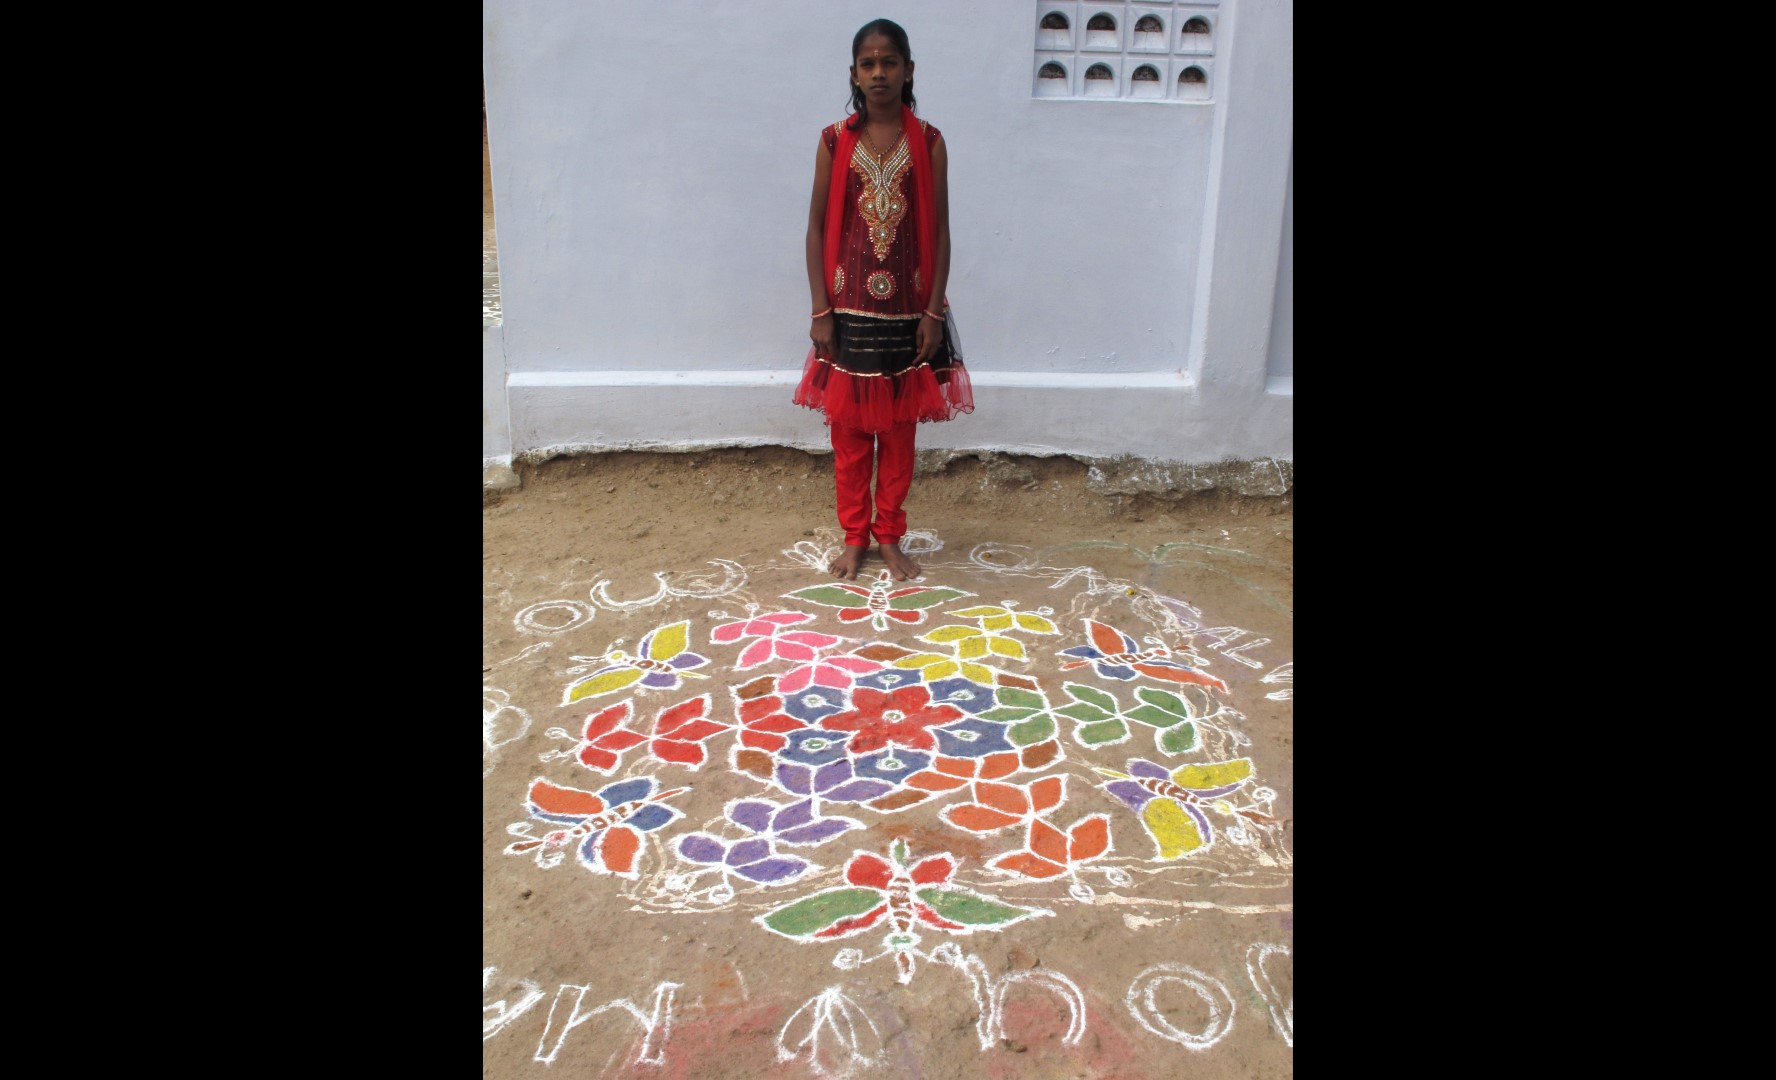 Sukkanya poses with the kolam she and her sister traced that morning